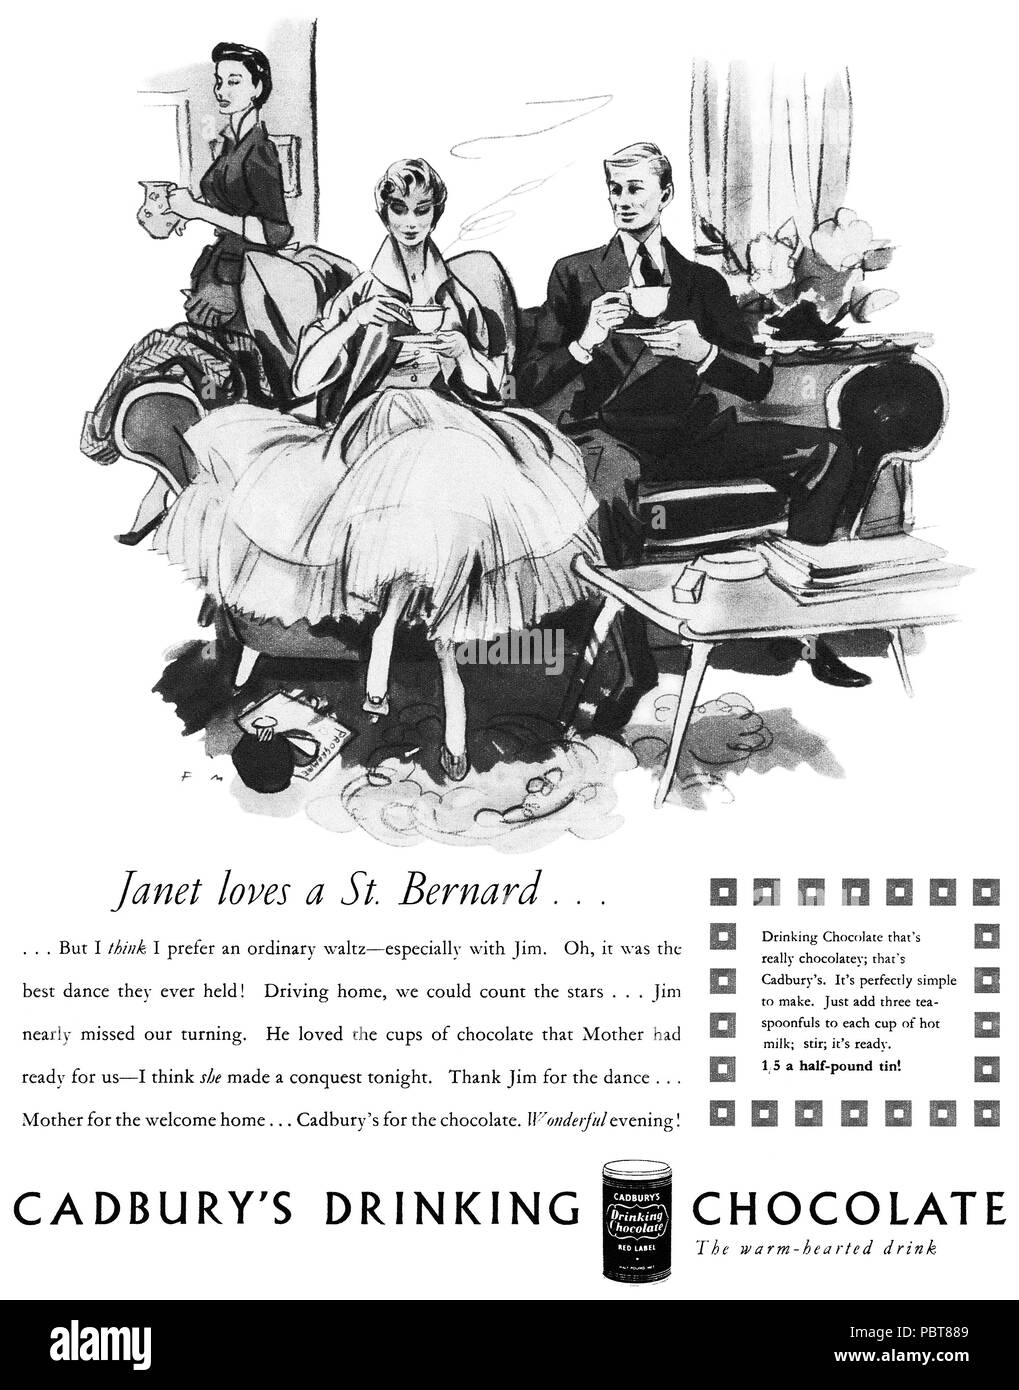 1954 British advertisement for Cadbury's drinking chocolate, illustrated by Francis Marshall. - Stock Image